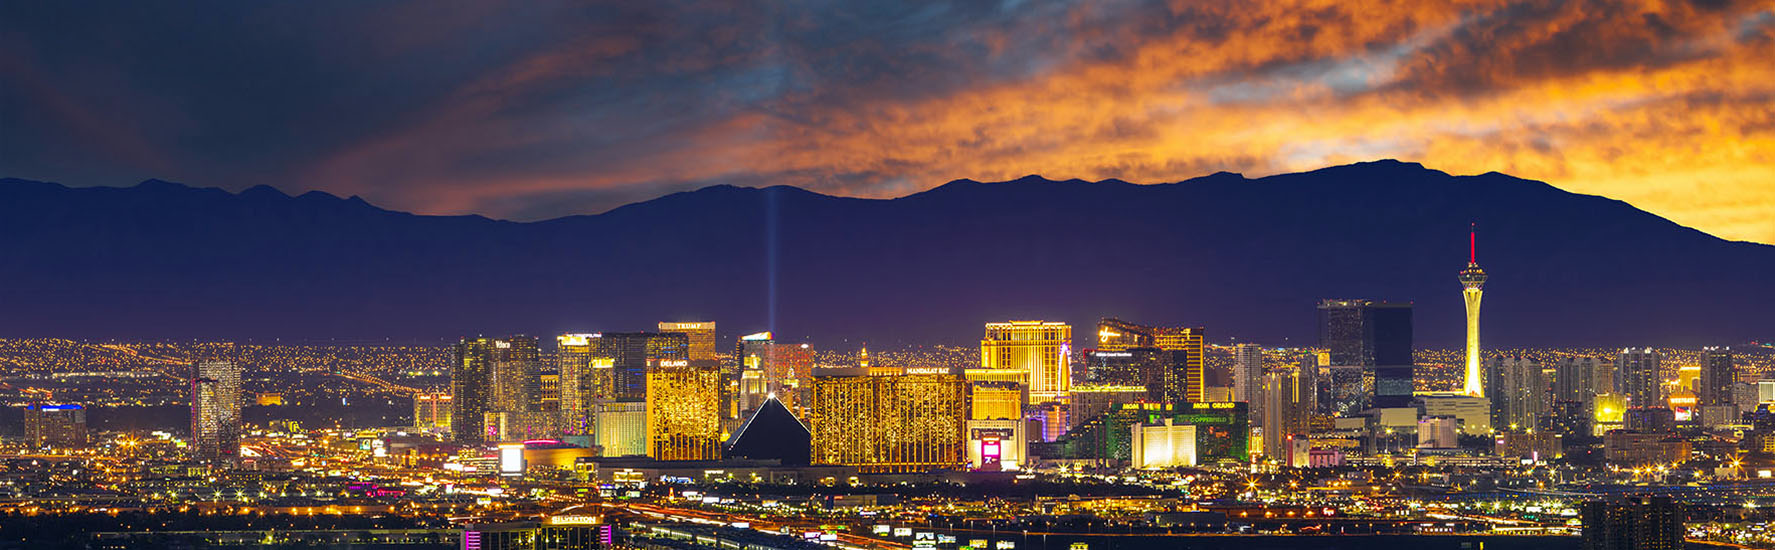 A&B Security - Security Systems in Las Vegas